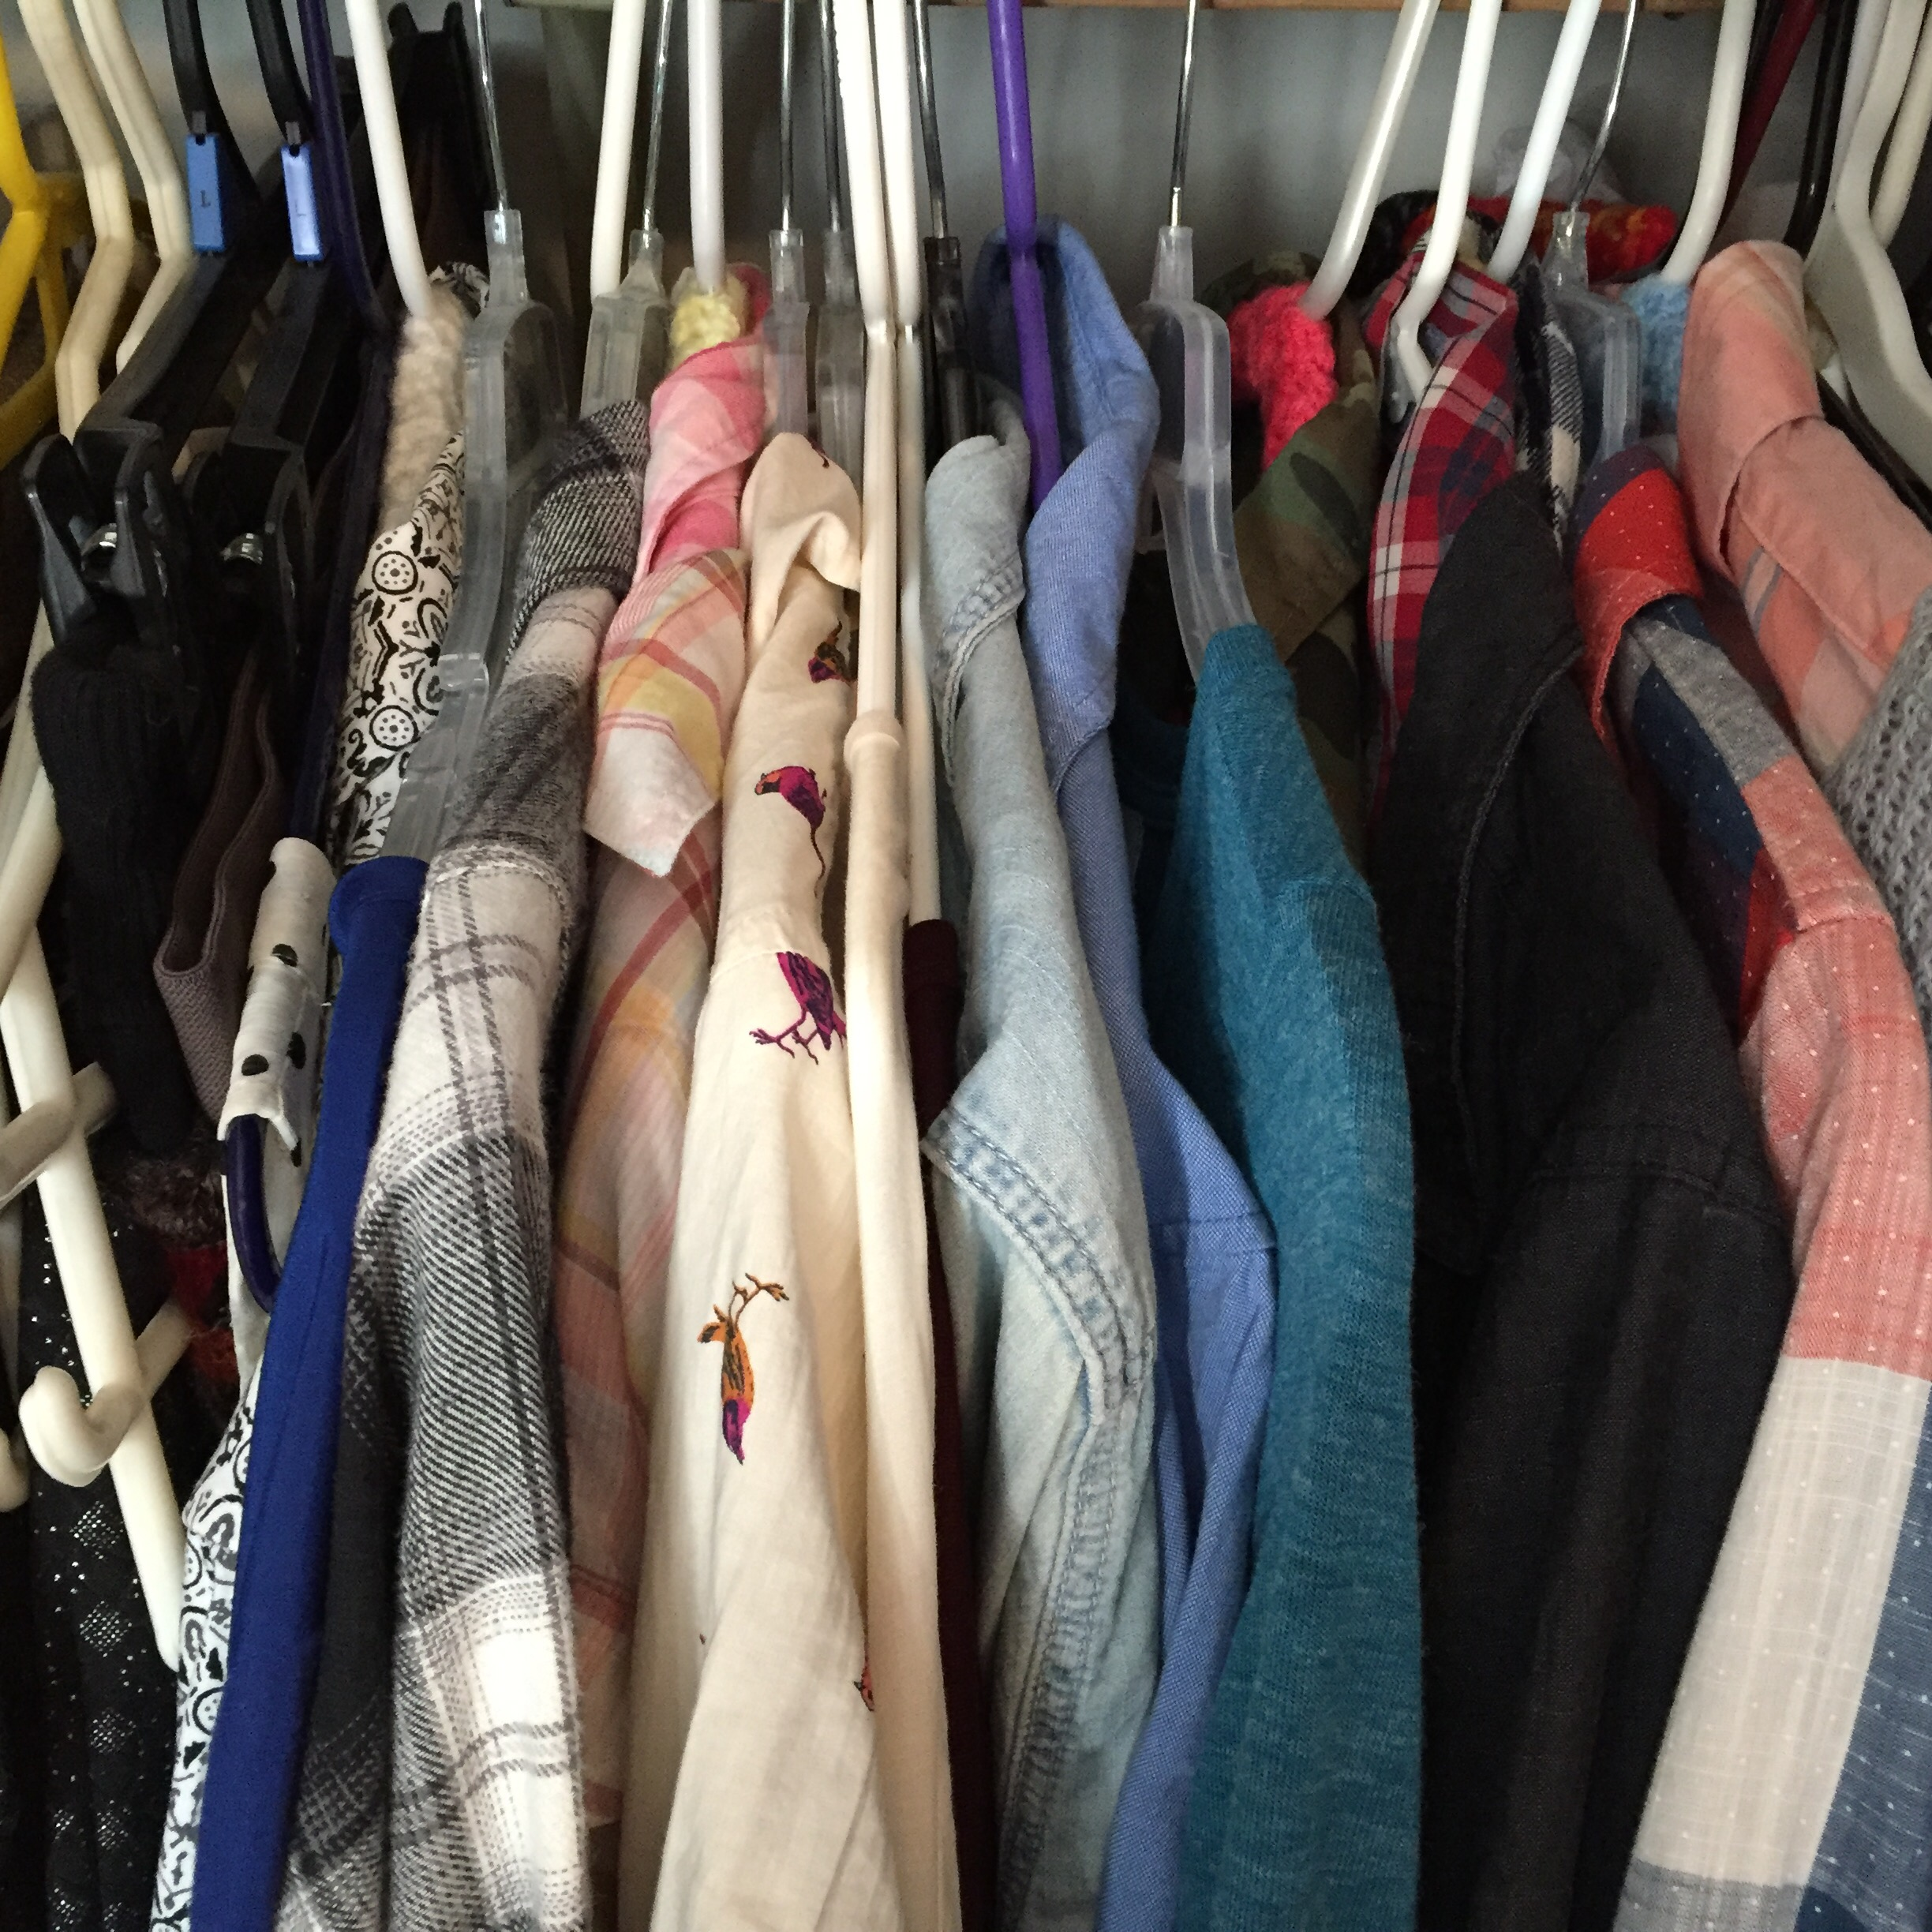 cluttered closet need wardrobe edit